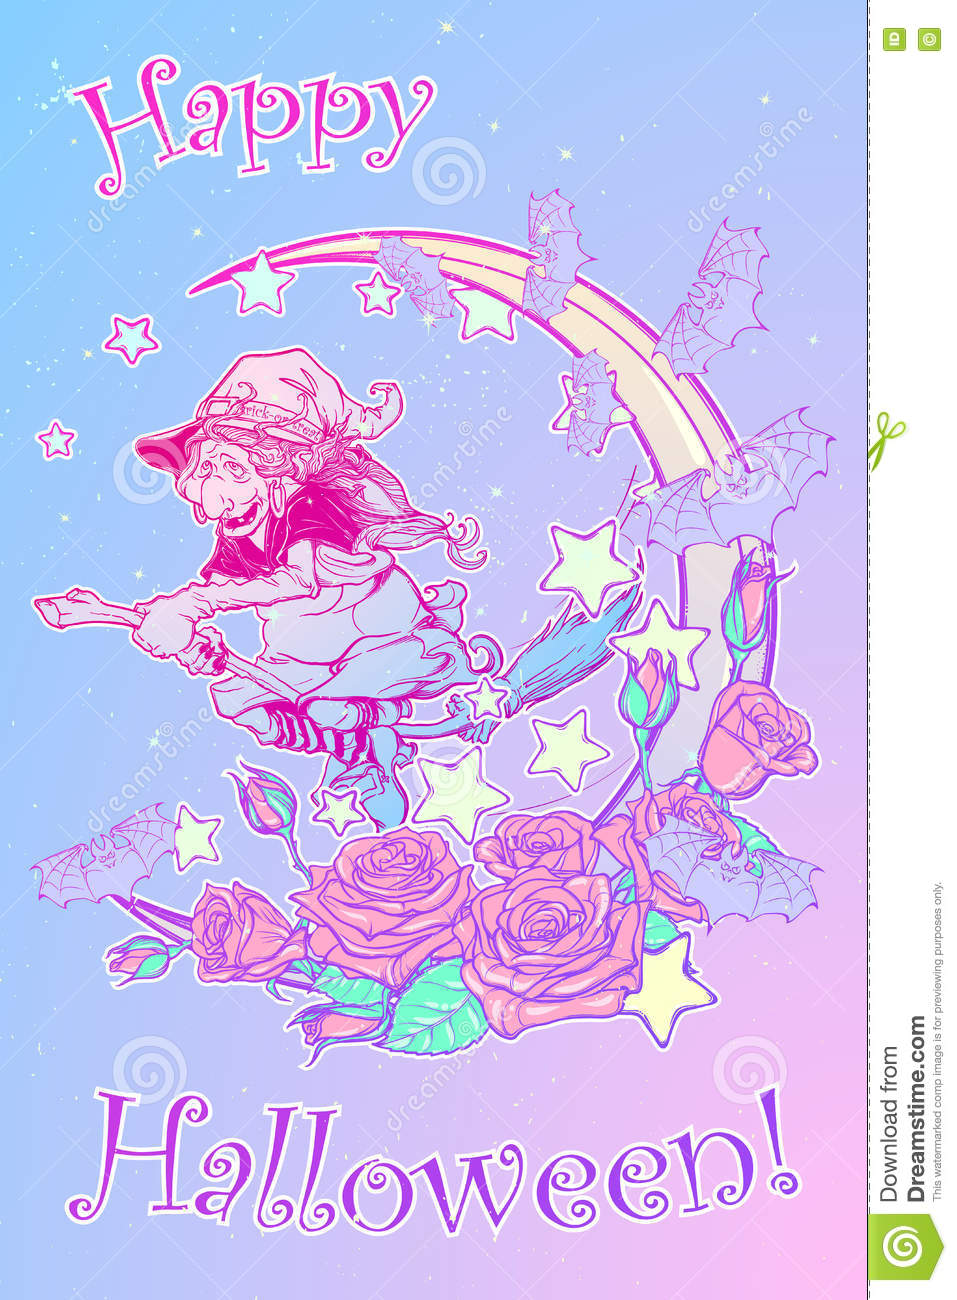 Cute Mermaids Wallpaper Witch Flying On A Broom Decorative Pastel Goth Background